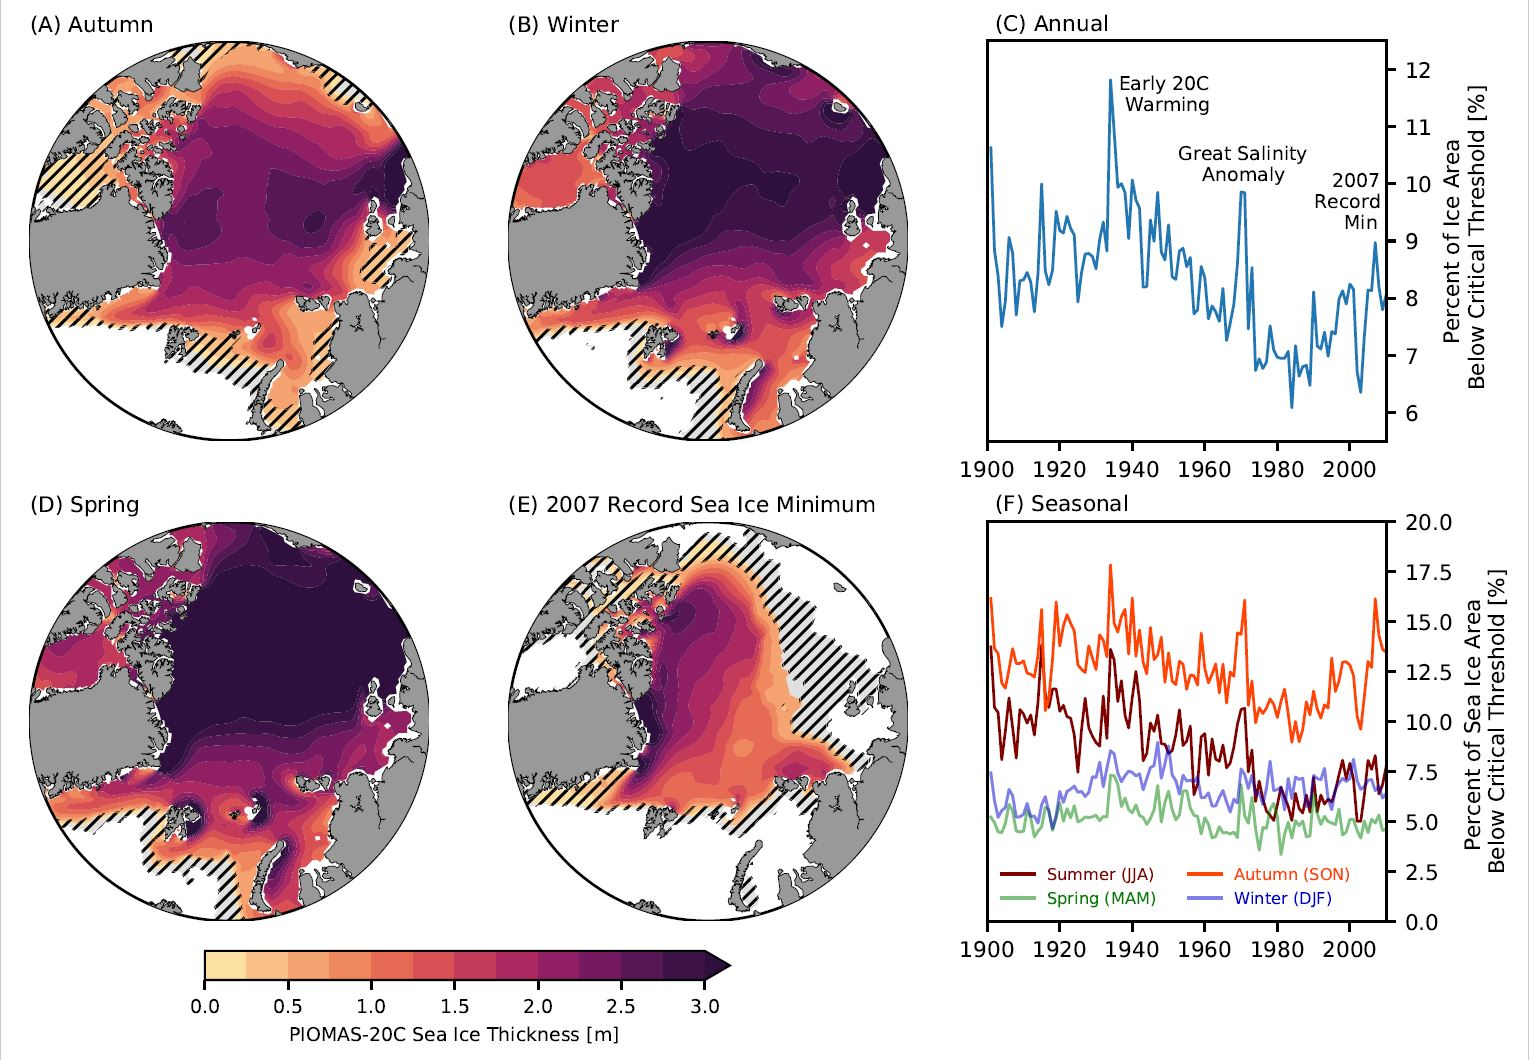 Sea ice thickness across the Arctic Ocean from the PIOMAS-20C reanalysis for (a) autumn (October 1999), (b) winter (January 2000), (d) spring (April 2000), and (e) the 2007 record sea ice minimum (September 2007). Sea ice area below the sea ice thickness threshold is hatched, and areas where sea ice thickness coincides with sea ice concentration below 0.15 are shaded light grey. (c) Annual and (f) seasonal contributions to the percent of total sea ice area below the sea ice thickness threshold. (Image courtesy of Victoria Ford.)